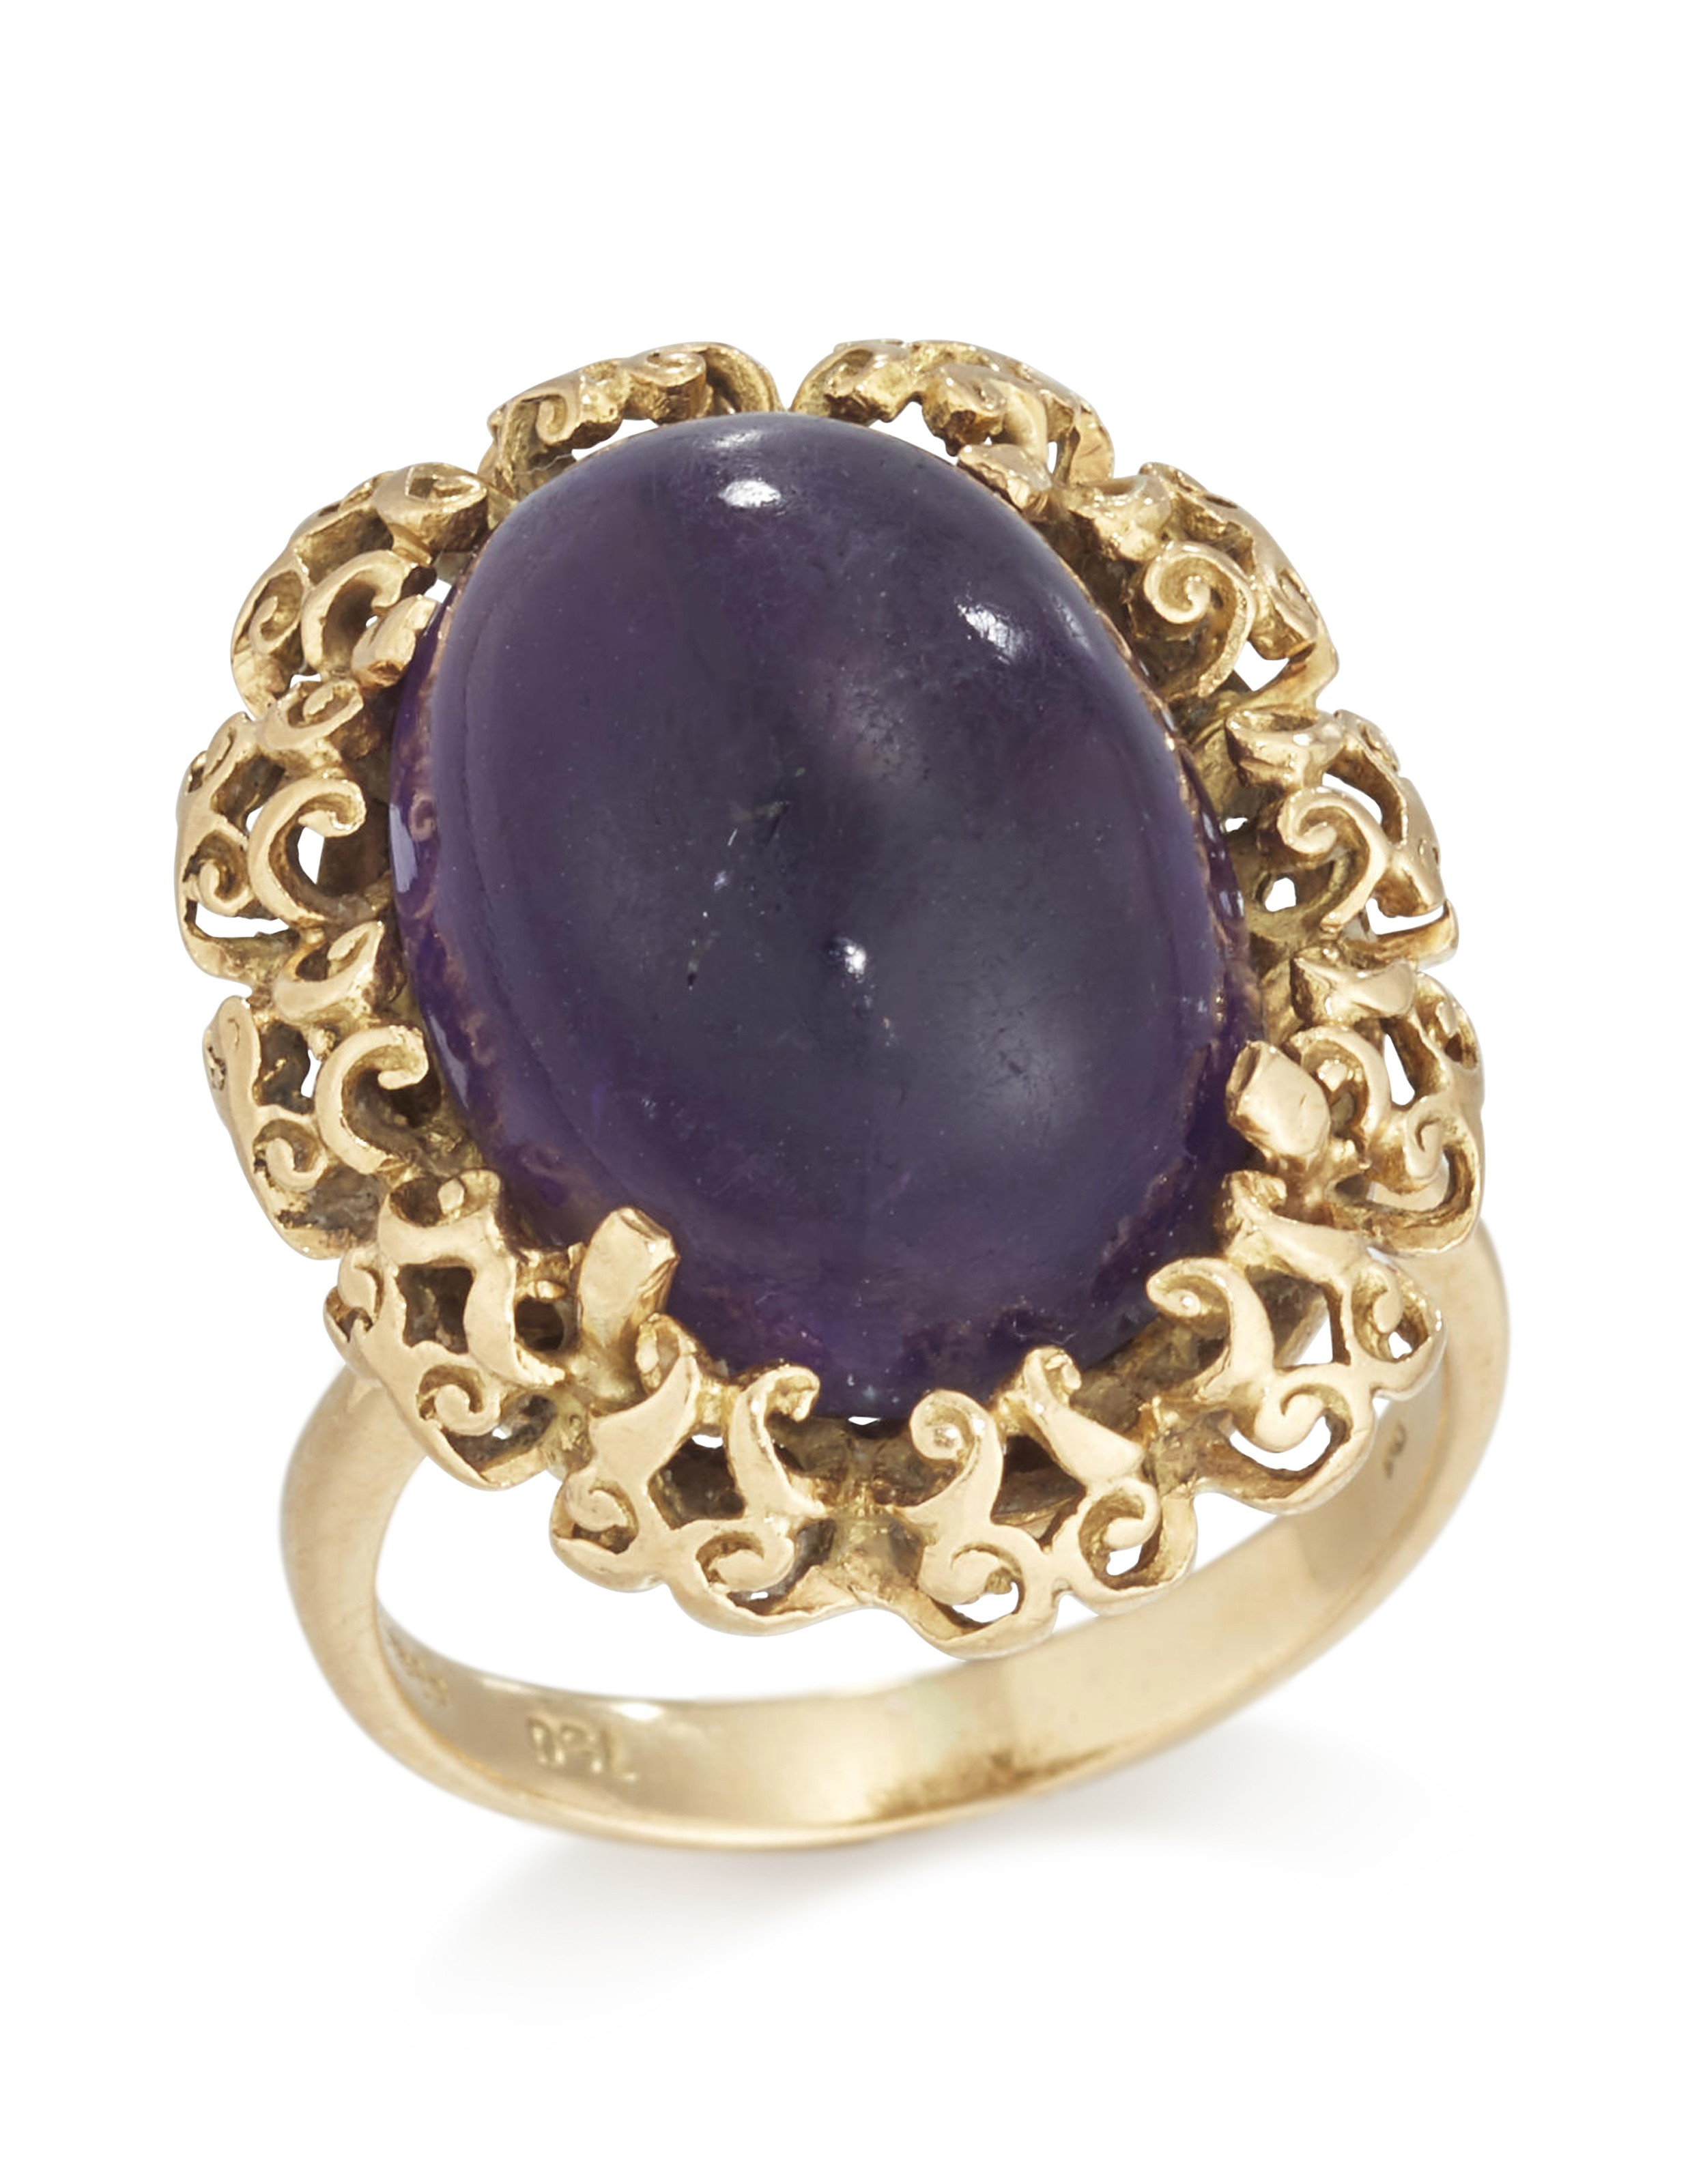 Margaret Thatcher's 18-carat gold and amethyst ring